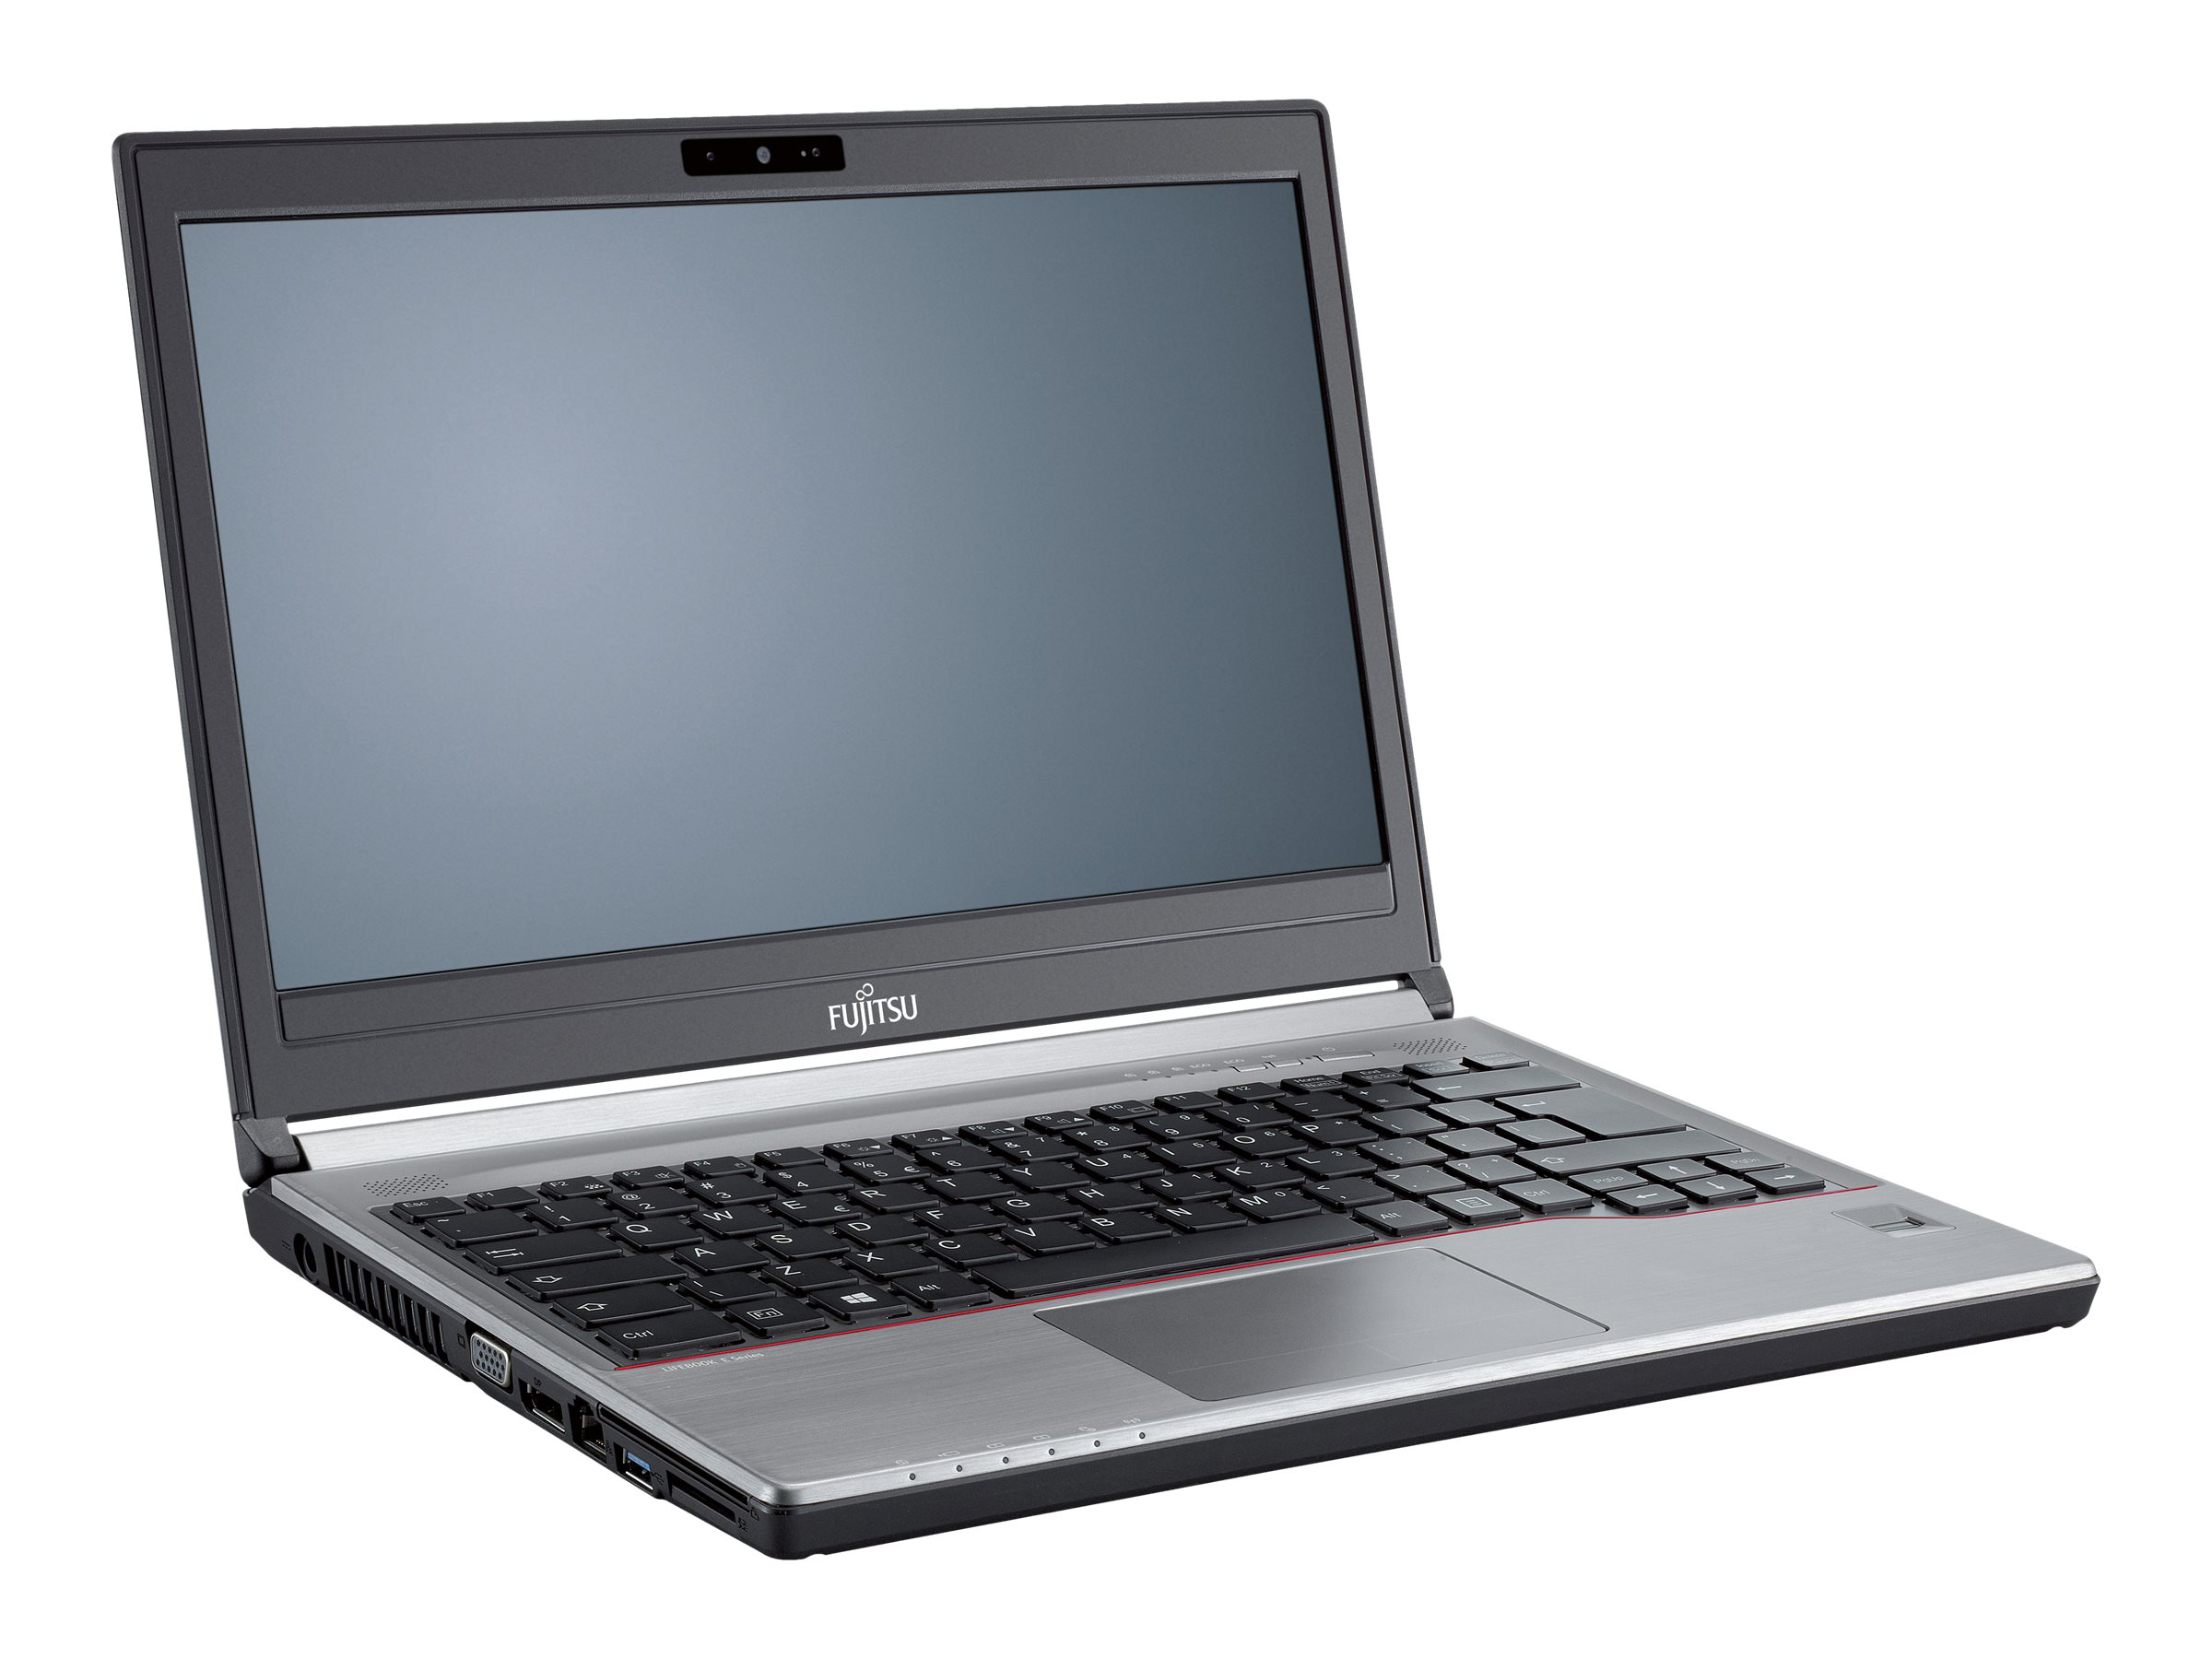 Fujitsu LifeBook E736 2.3GHz Core i5 13.3in display, SPFC-E736-001